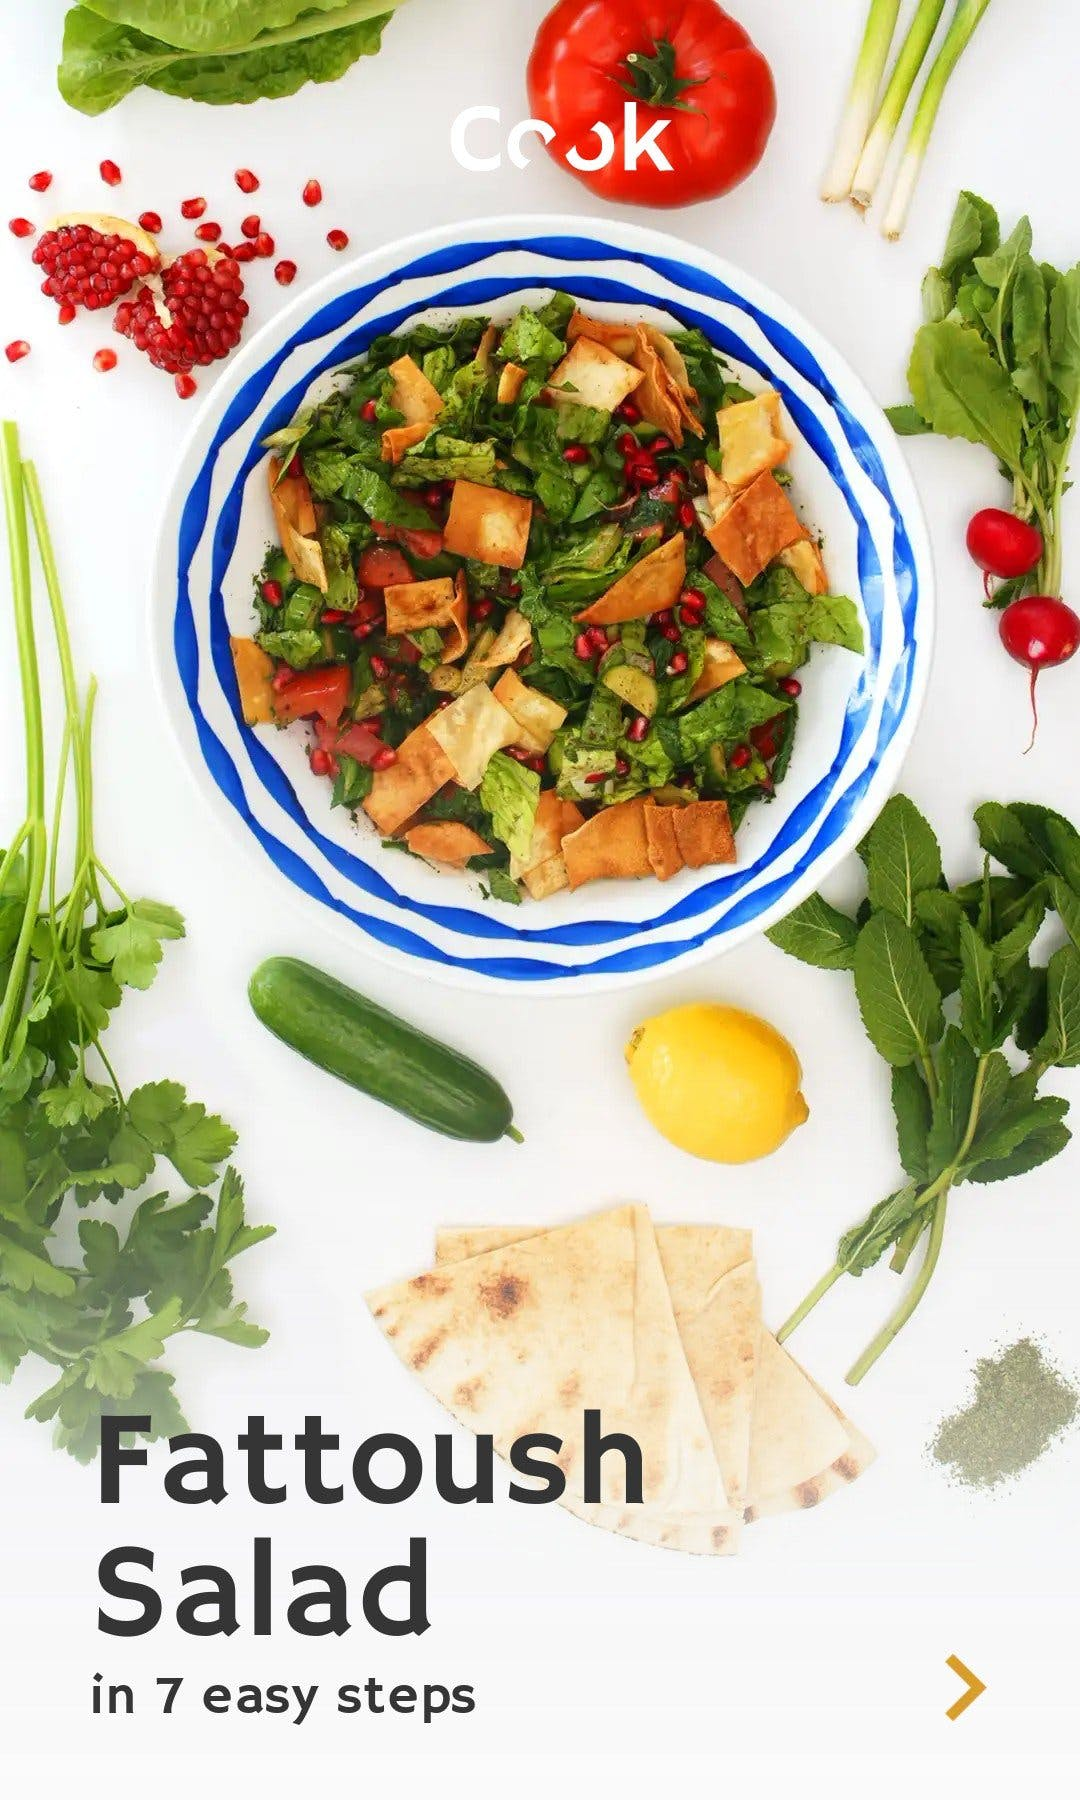 Cover image of a Tappable web story showing how to make a fattouch salad